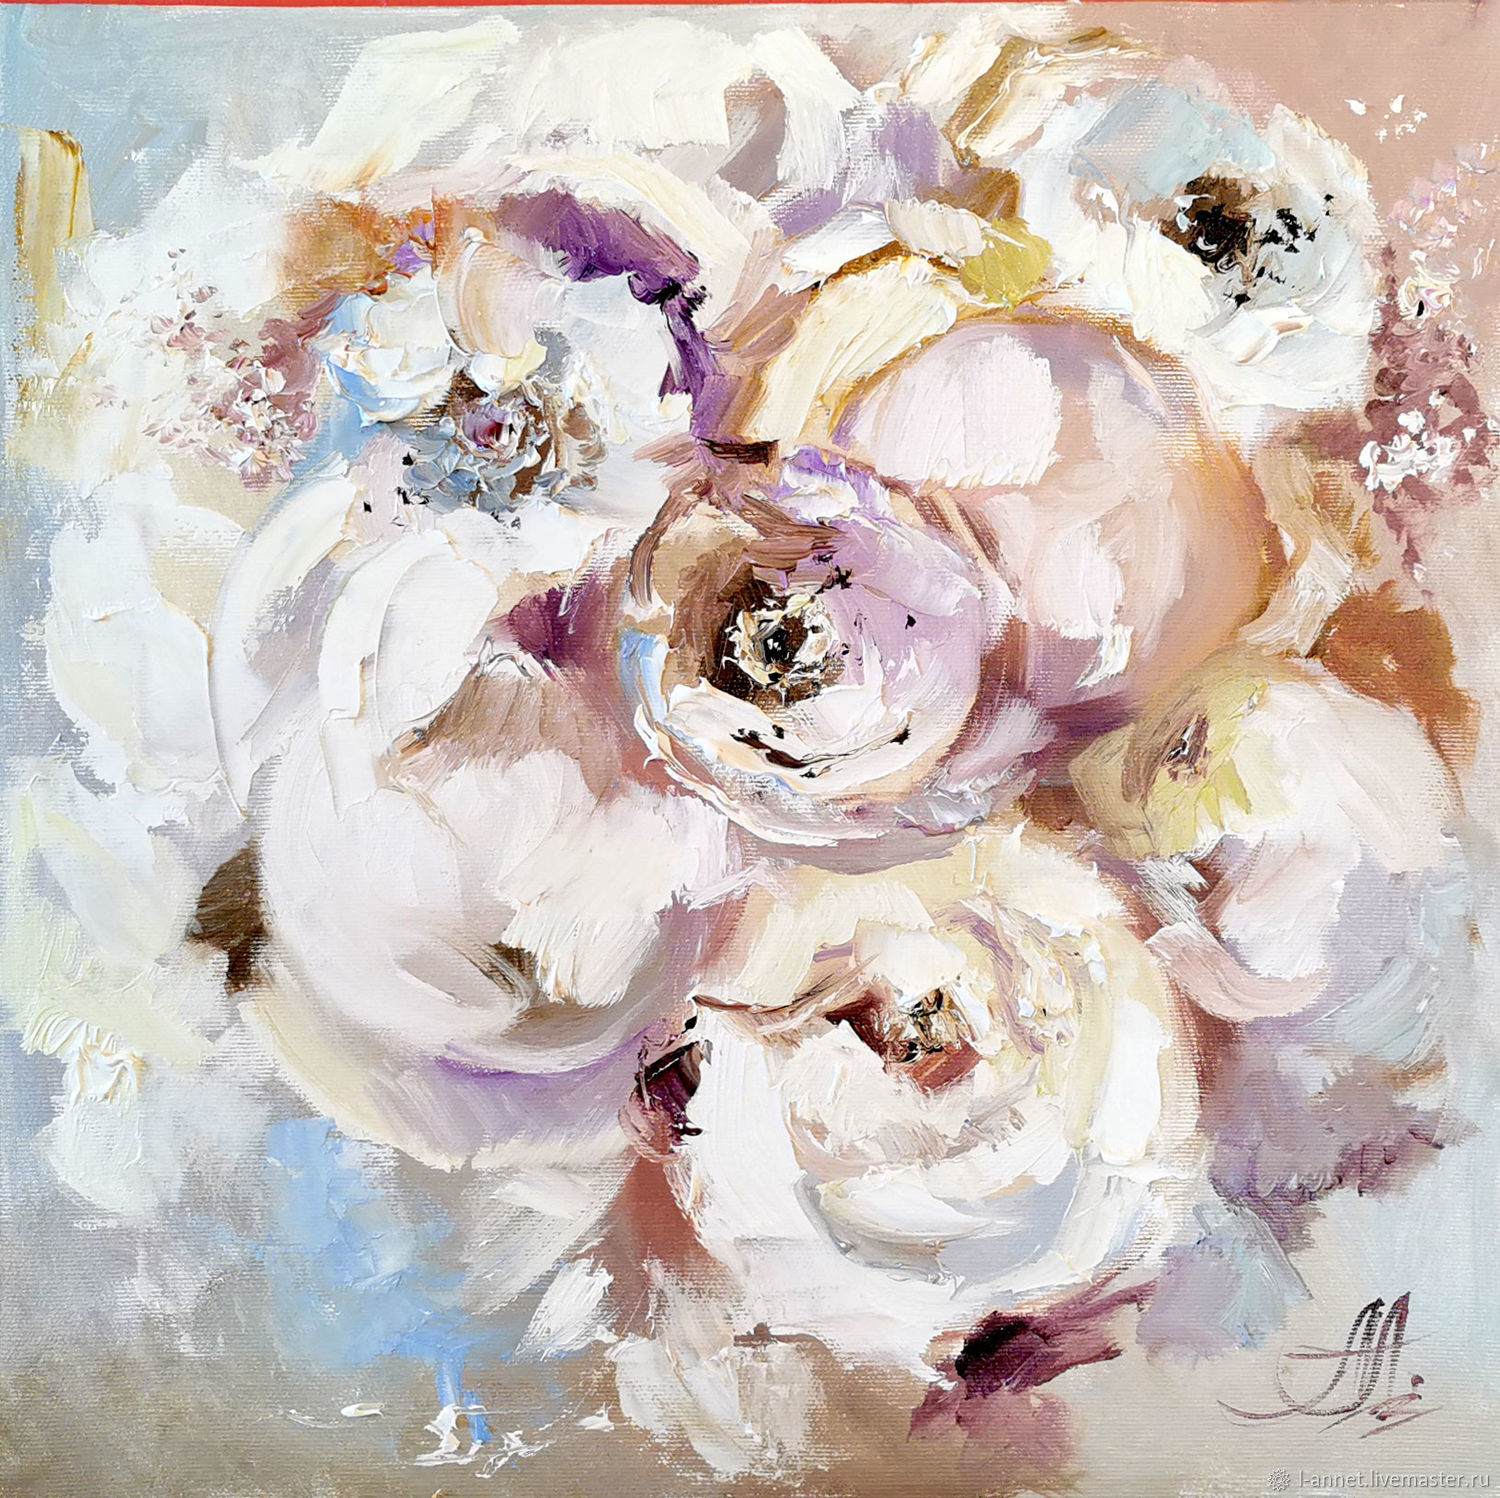 Oil painting with flowers ' Marshmallow petals', Pictures, Moscow,  Фото №1